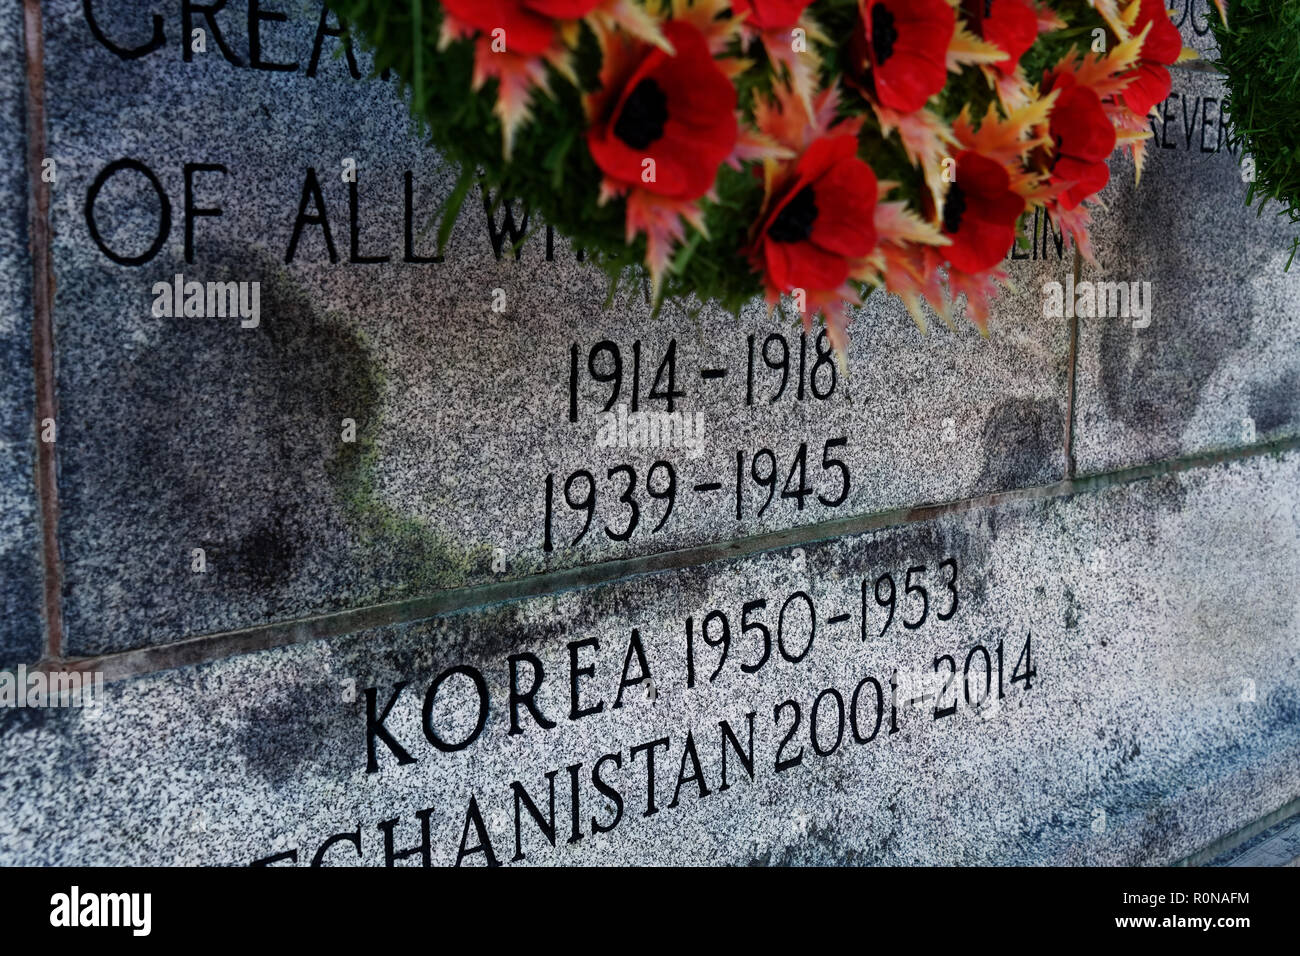 CHARLOTTETOWN, PE, CANADA - DEC. 8, 2017: Inscription on a Canadian War Memorial. - Stock Image